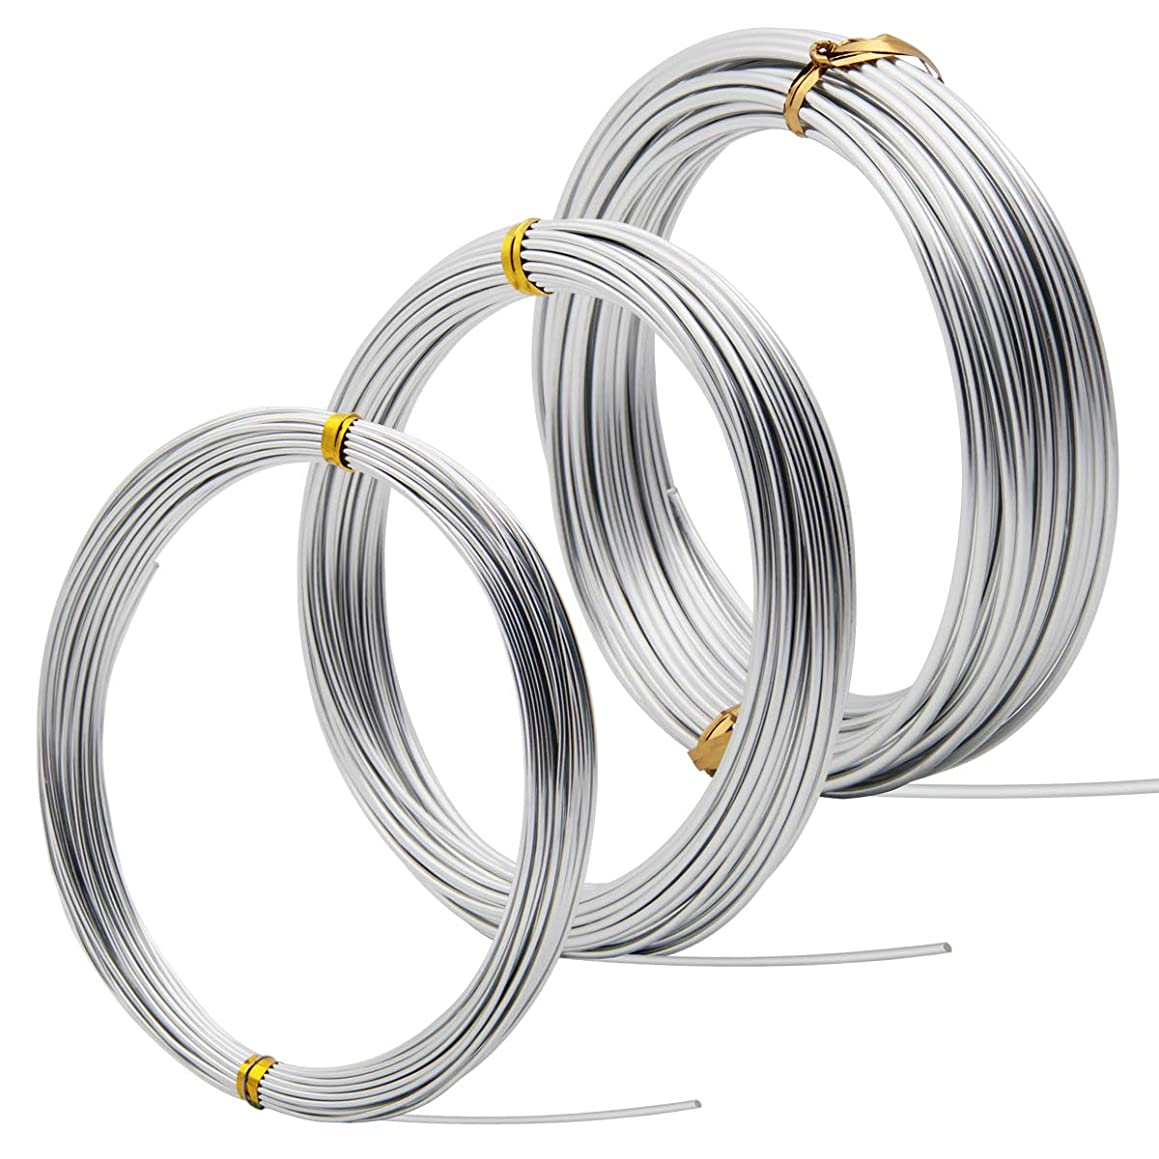 Coolrunner (3 Rolls)32.8 Feet Silver Aluminum Wire, Bendable Metal Craft Wire for Making Dolls Skeleton DIY Crafts